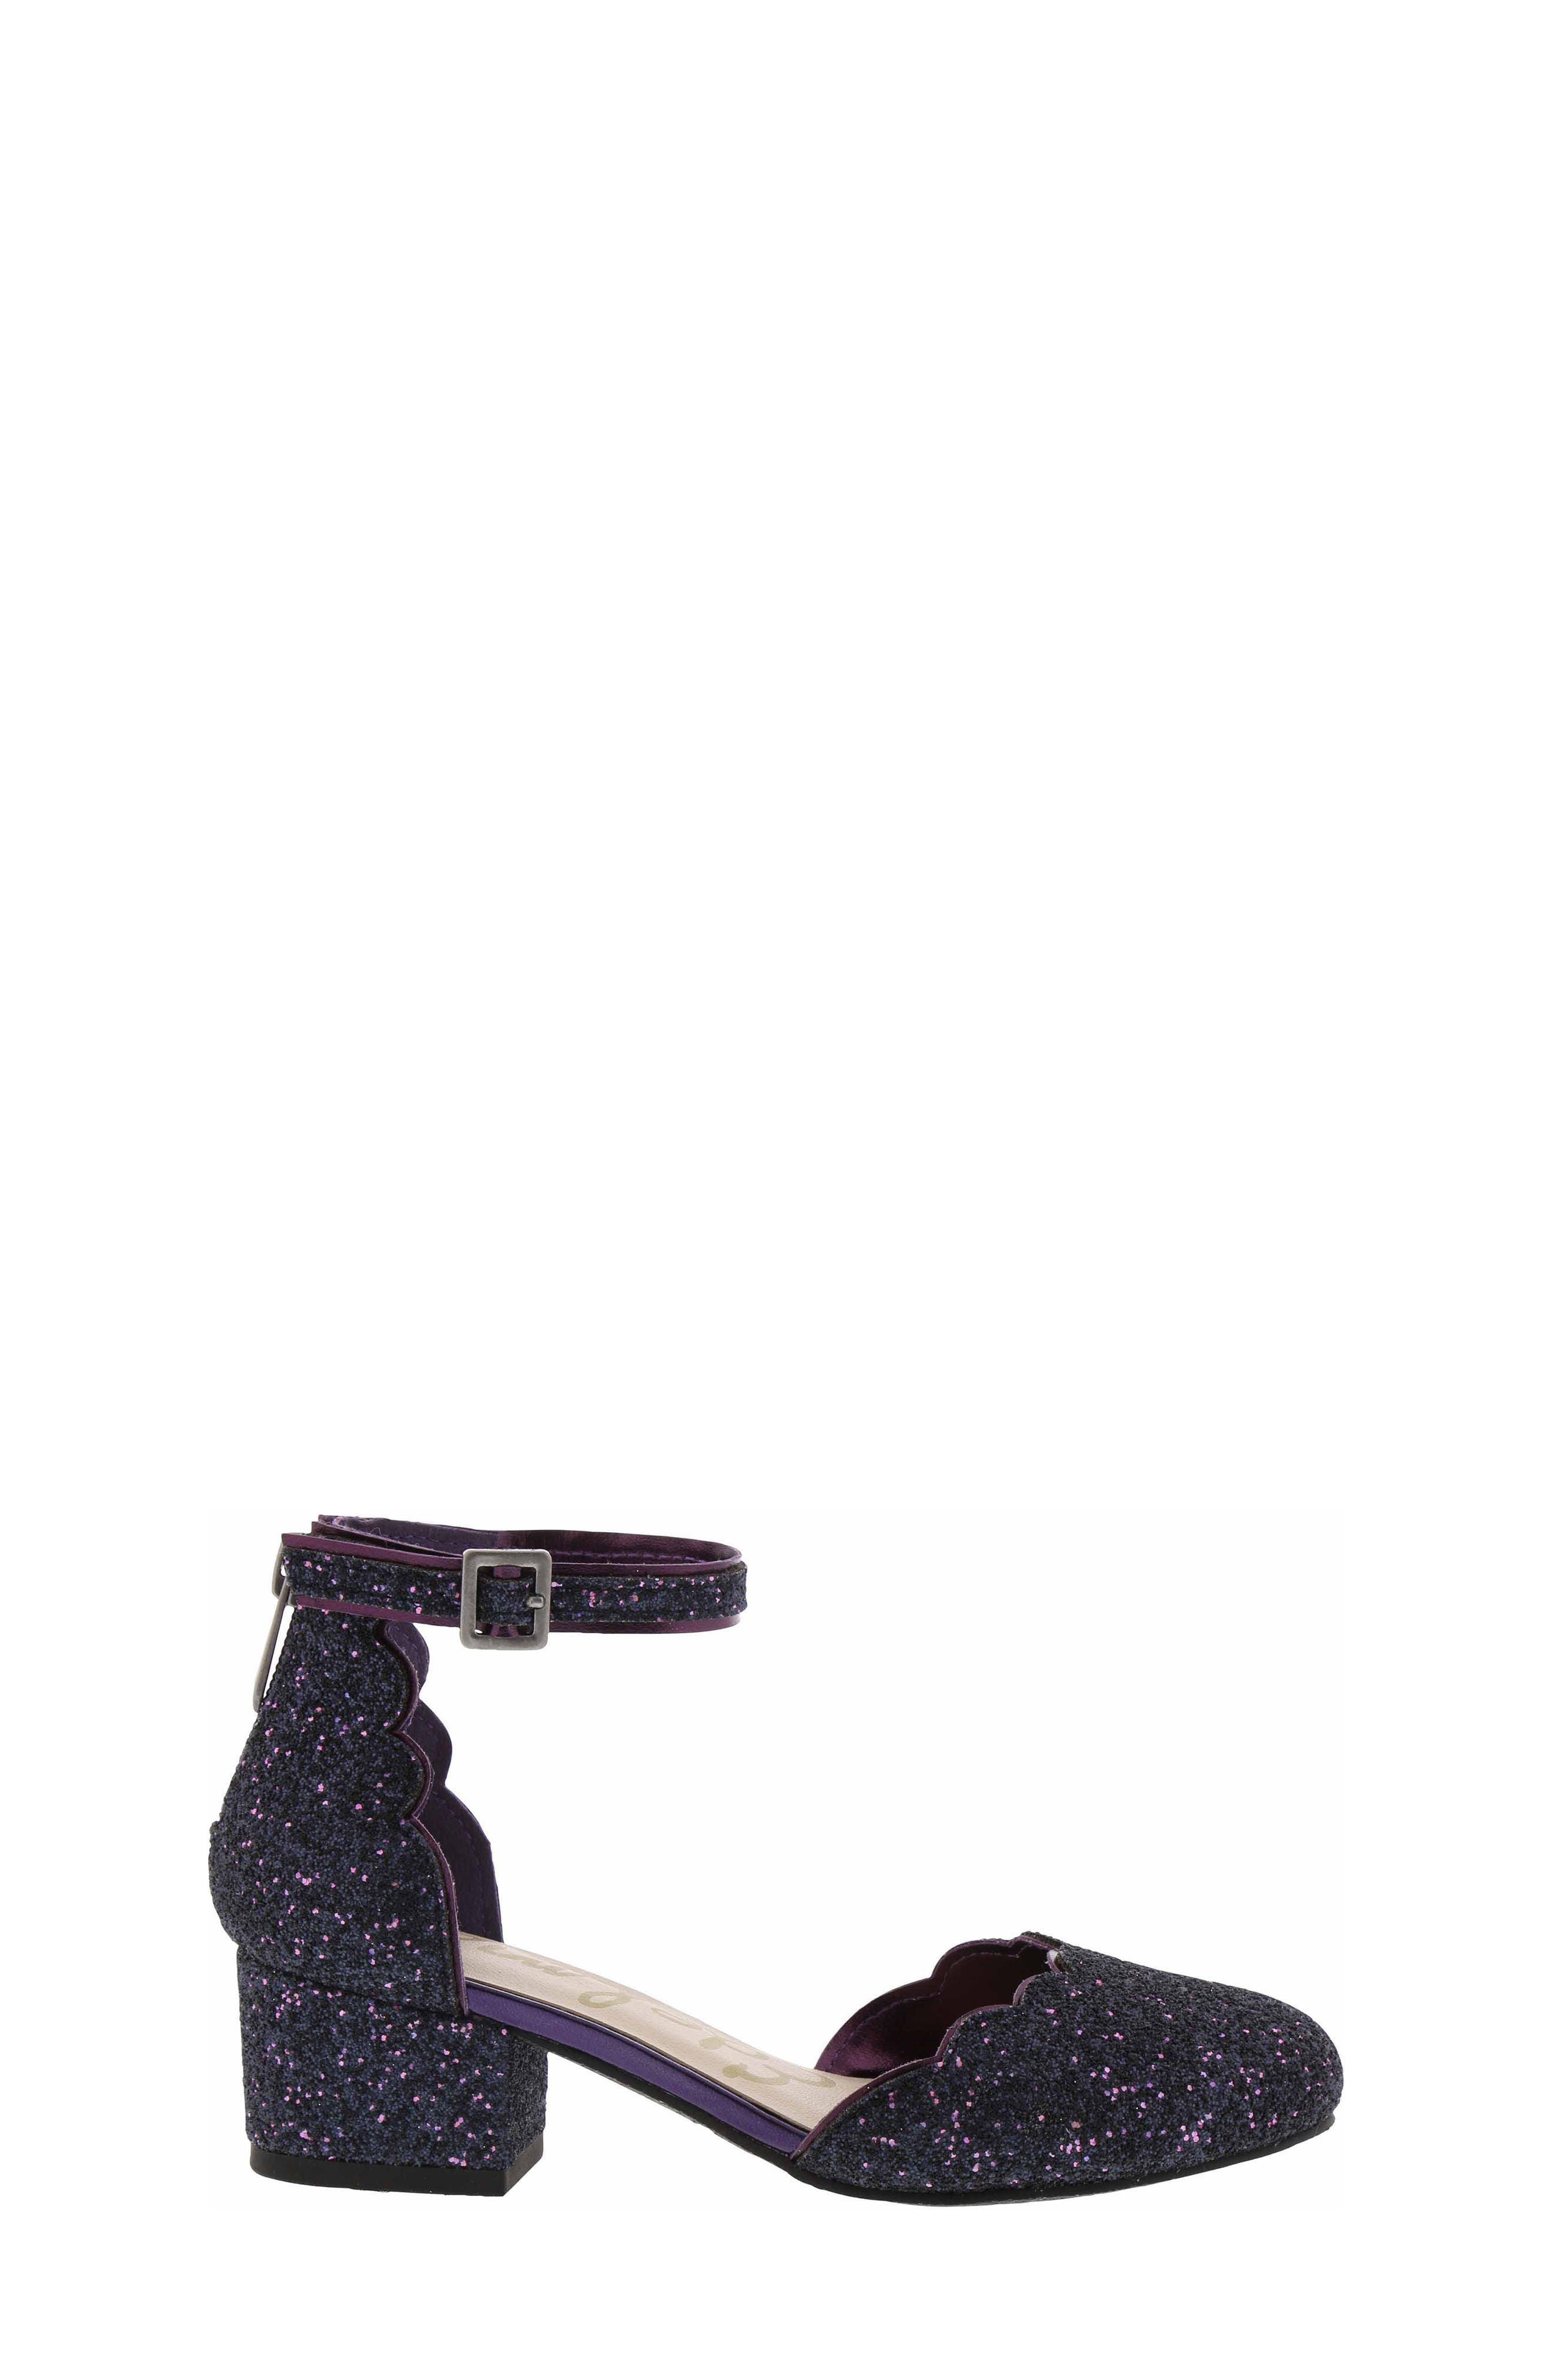 Evelyn Inara Glitter Ankle Strap Pump,                             Alternate thumbnail 2, color,                             PURPLE MULTI